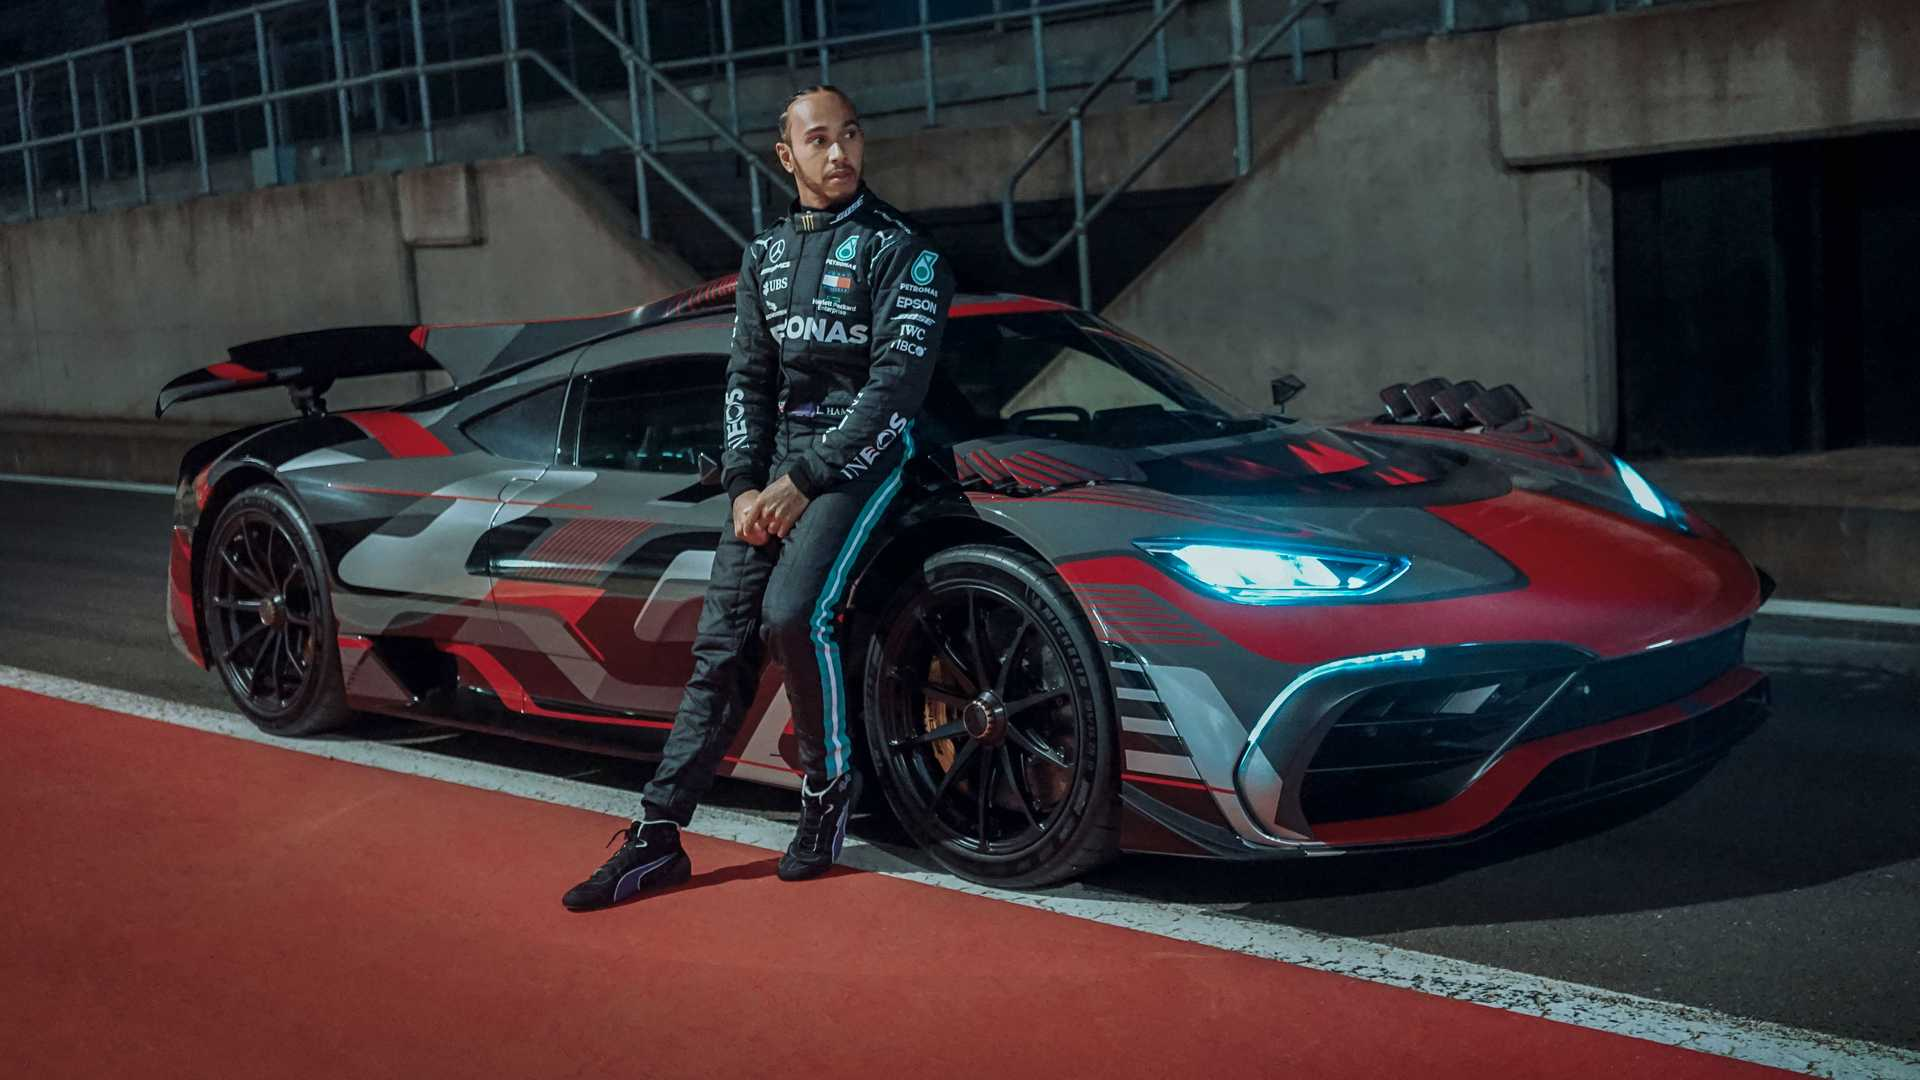 Lewis Hamilton Drives Mercedes-AMG One Hypercar After Work